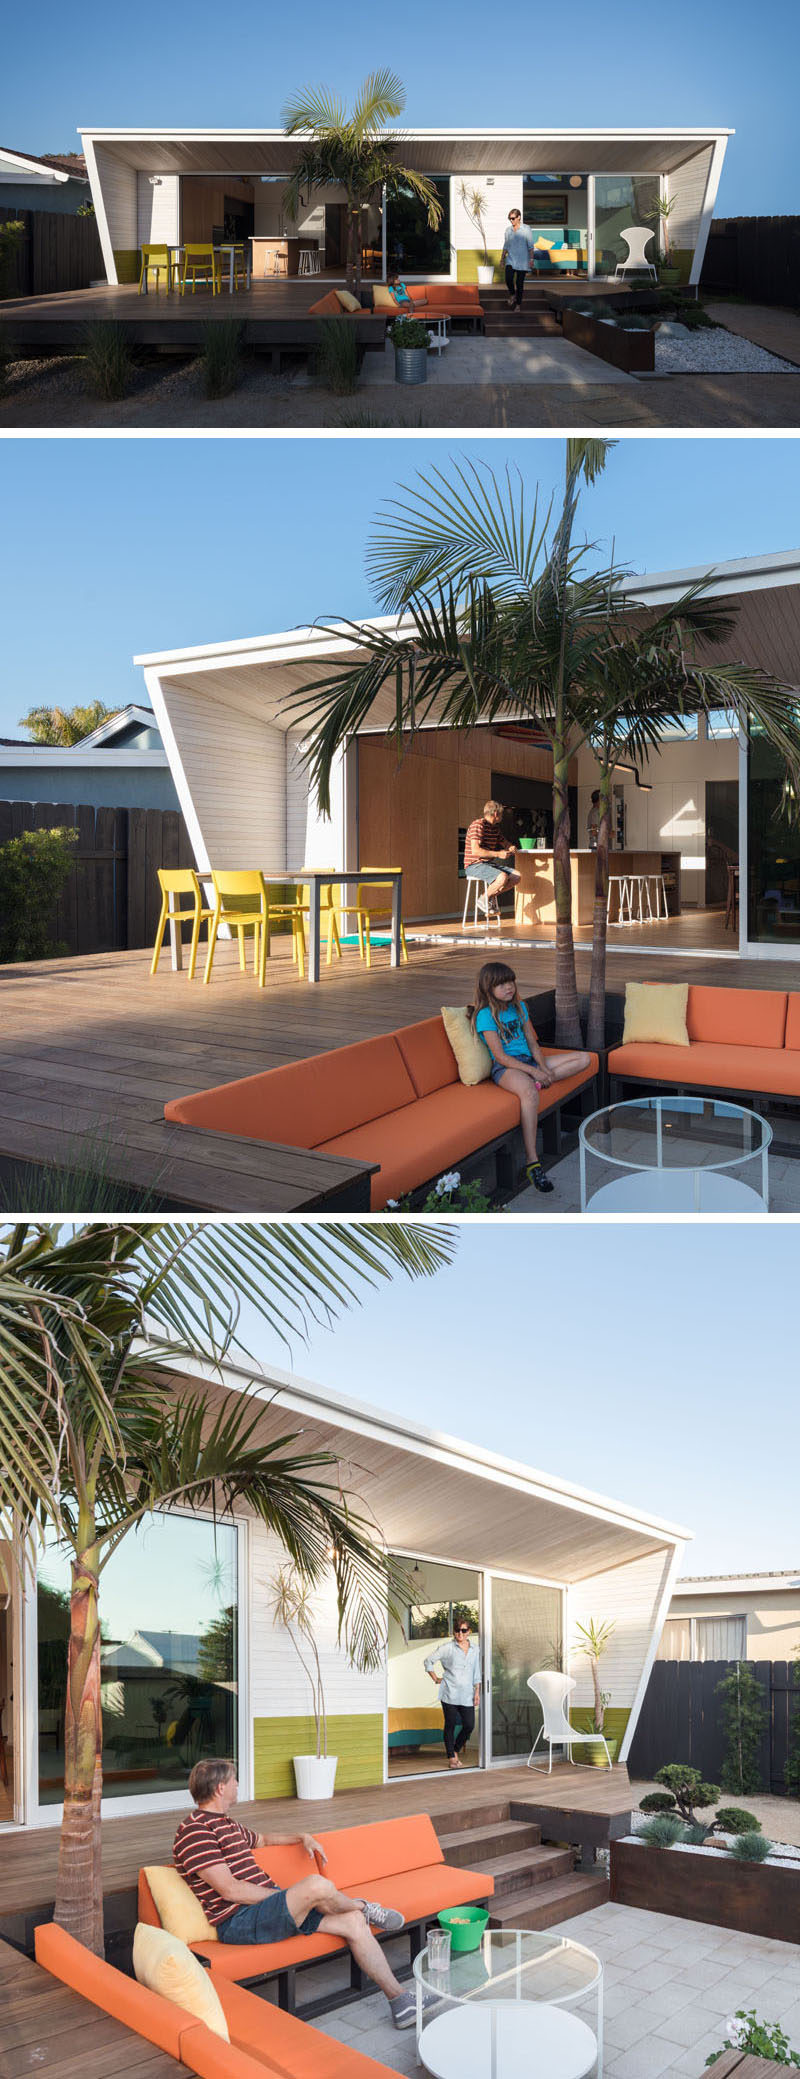 This renovated modern beach house has a roof line that overhangs the deck and provides some shade. Stepping down from the wood deck is a built-in lounge.